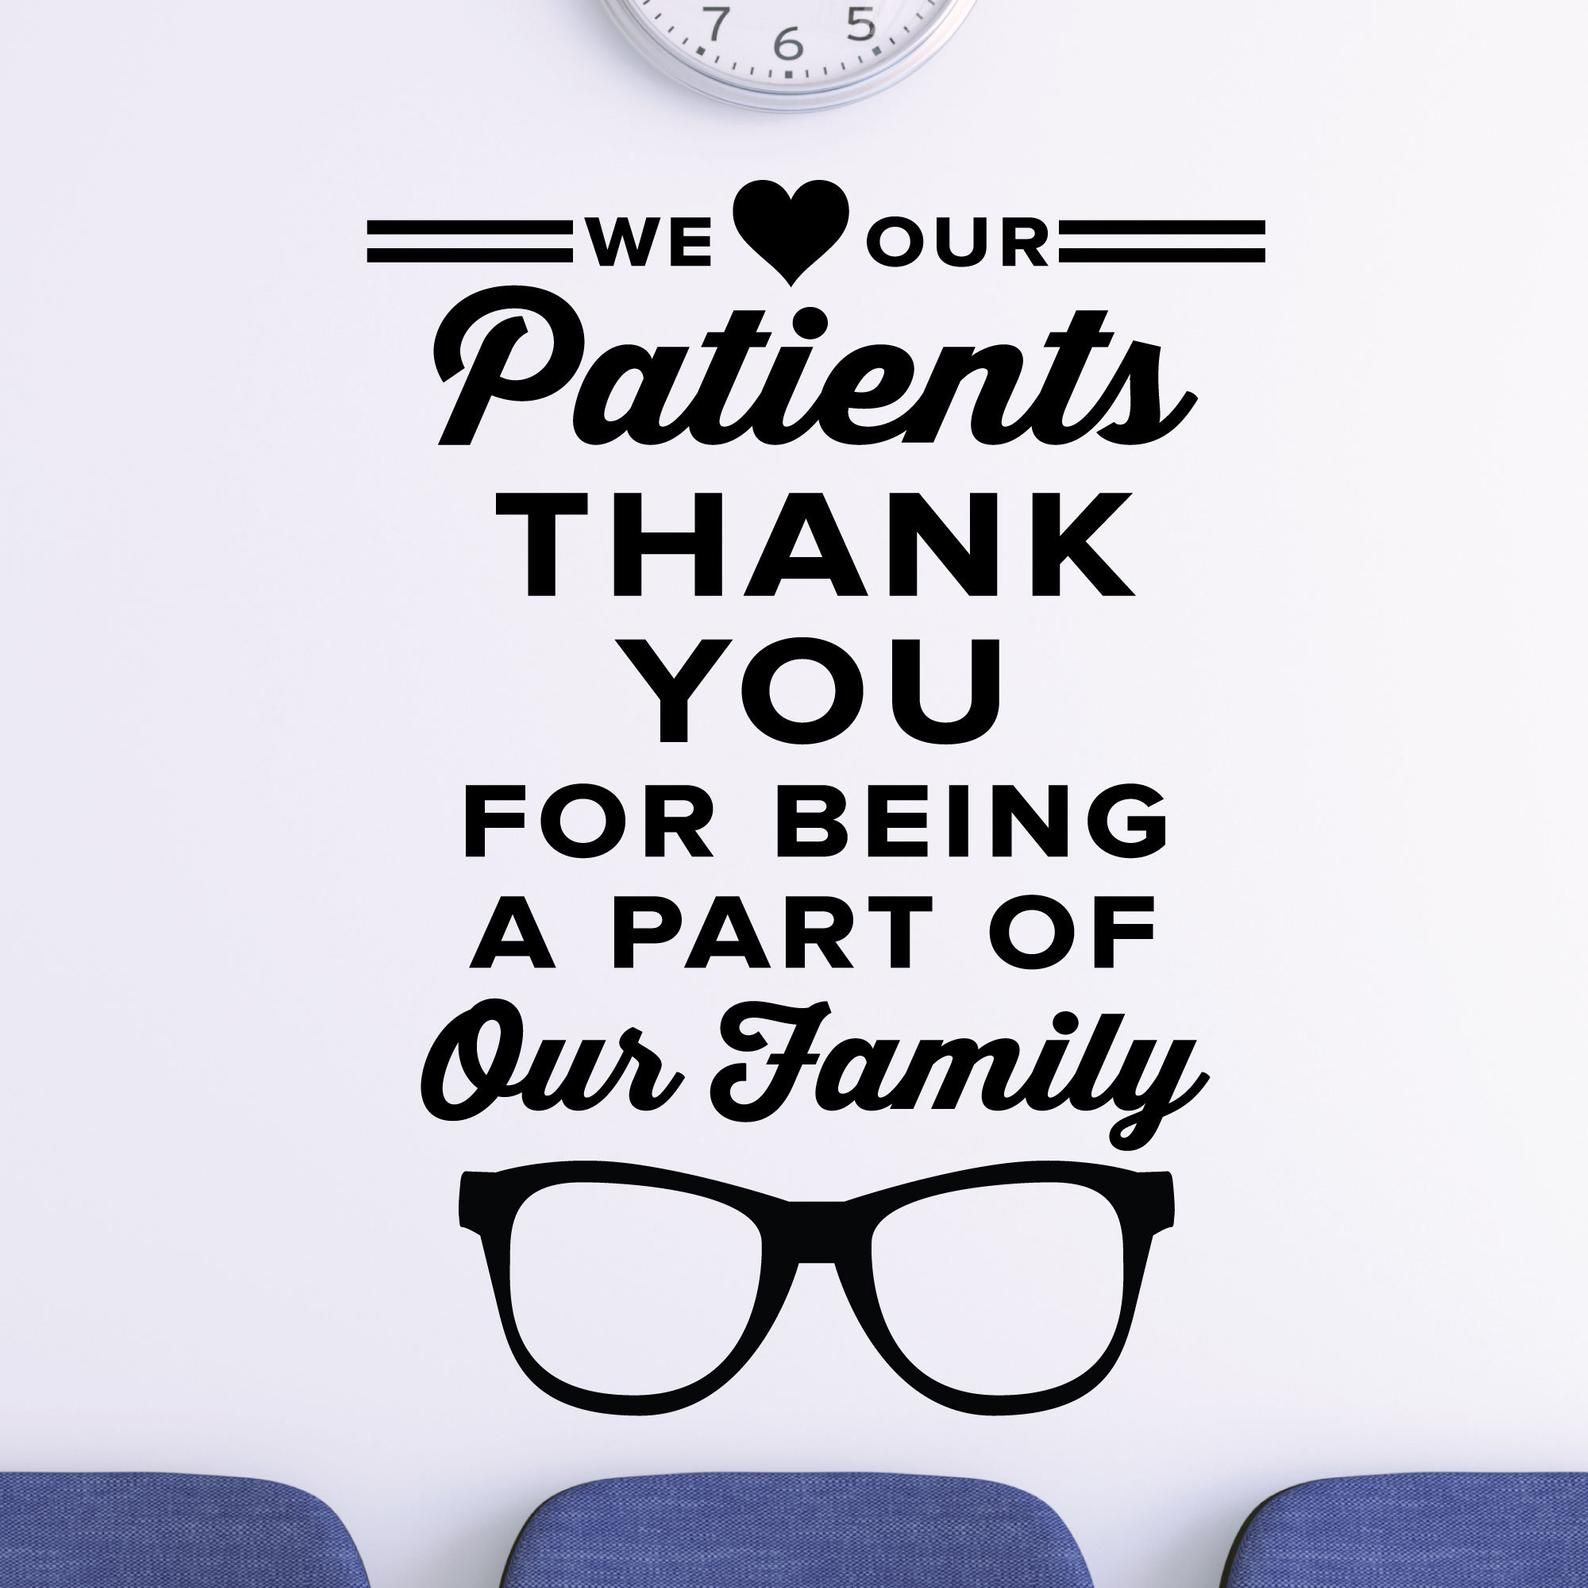 We love our patients eye doctor office wall decal - 0521 - Eye Doctor Sticker - Optometrist Wall Art